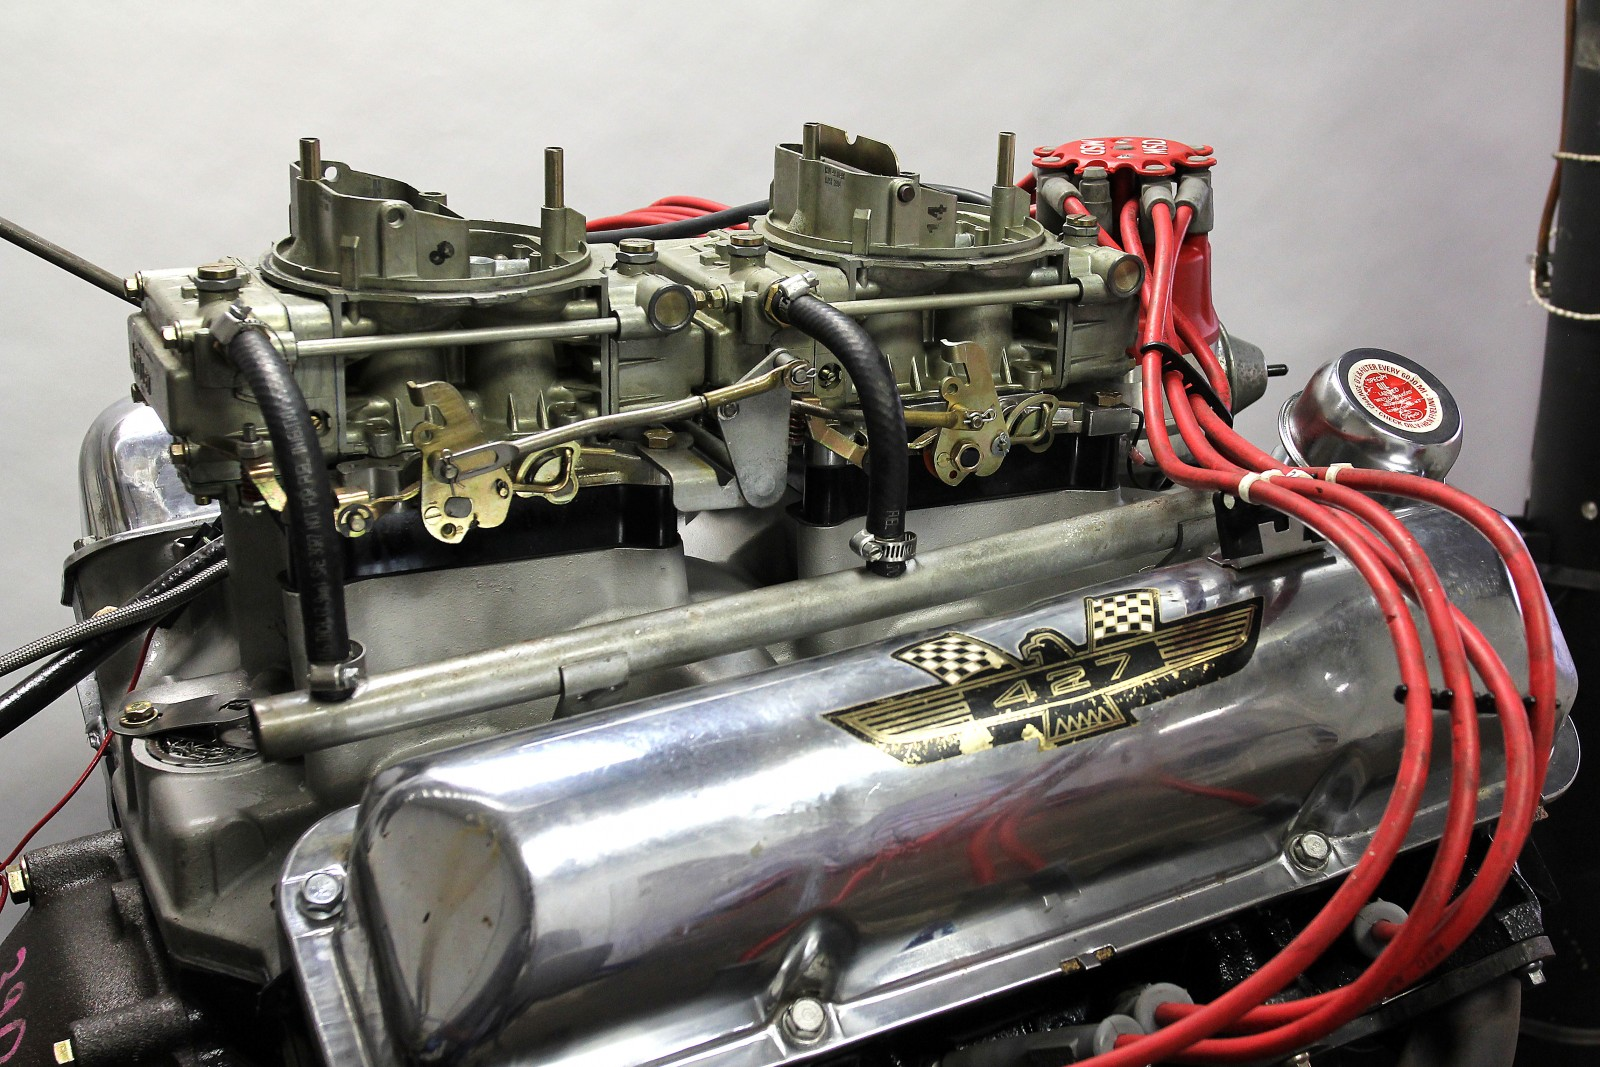 Reviving the Top-Oiler: Stuffing Big Cubic Inches into a 427